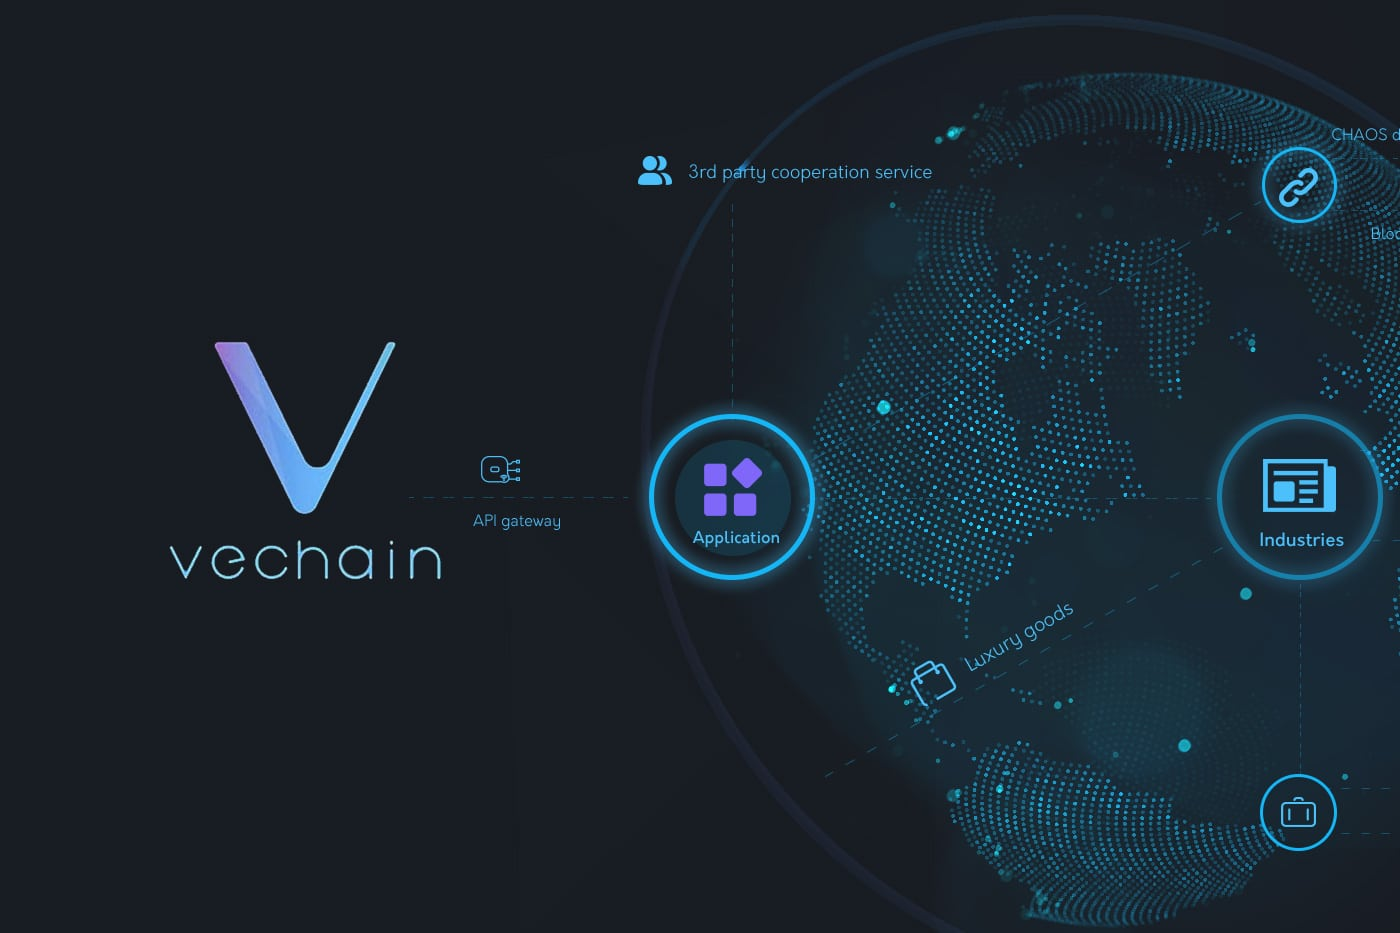 VeChain [VEN] Price Only Survivor on Today's Sell-out 13